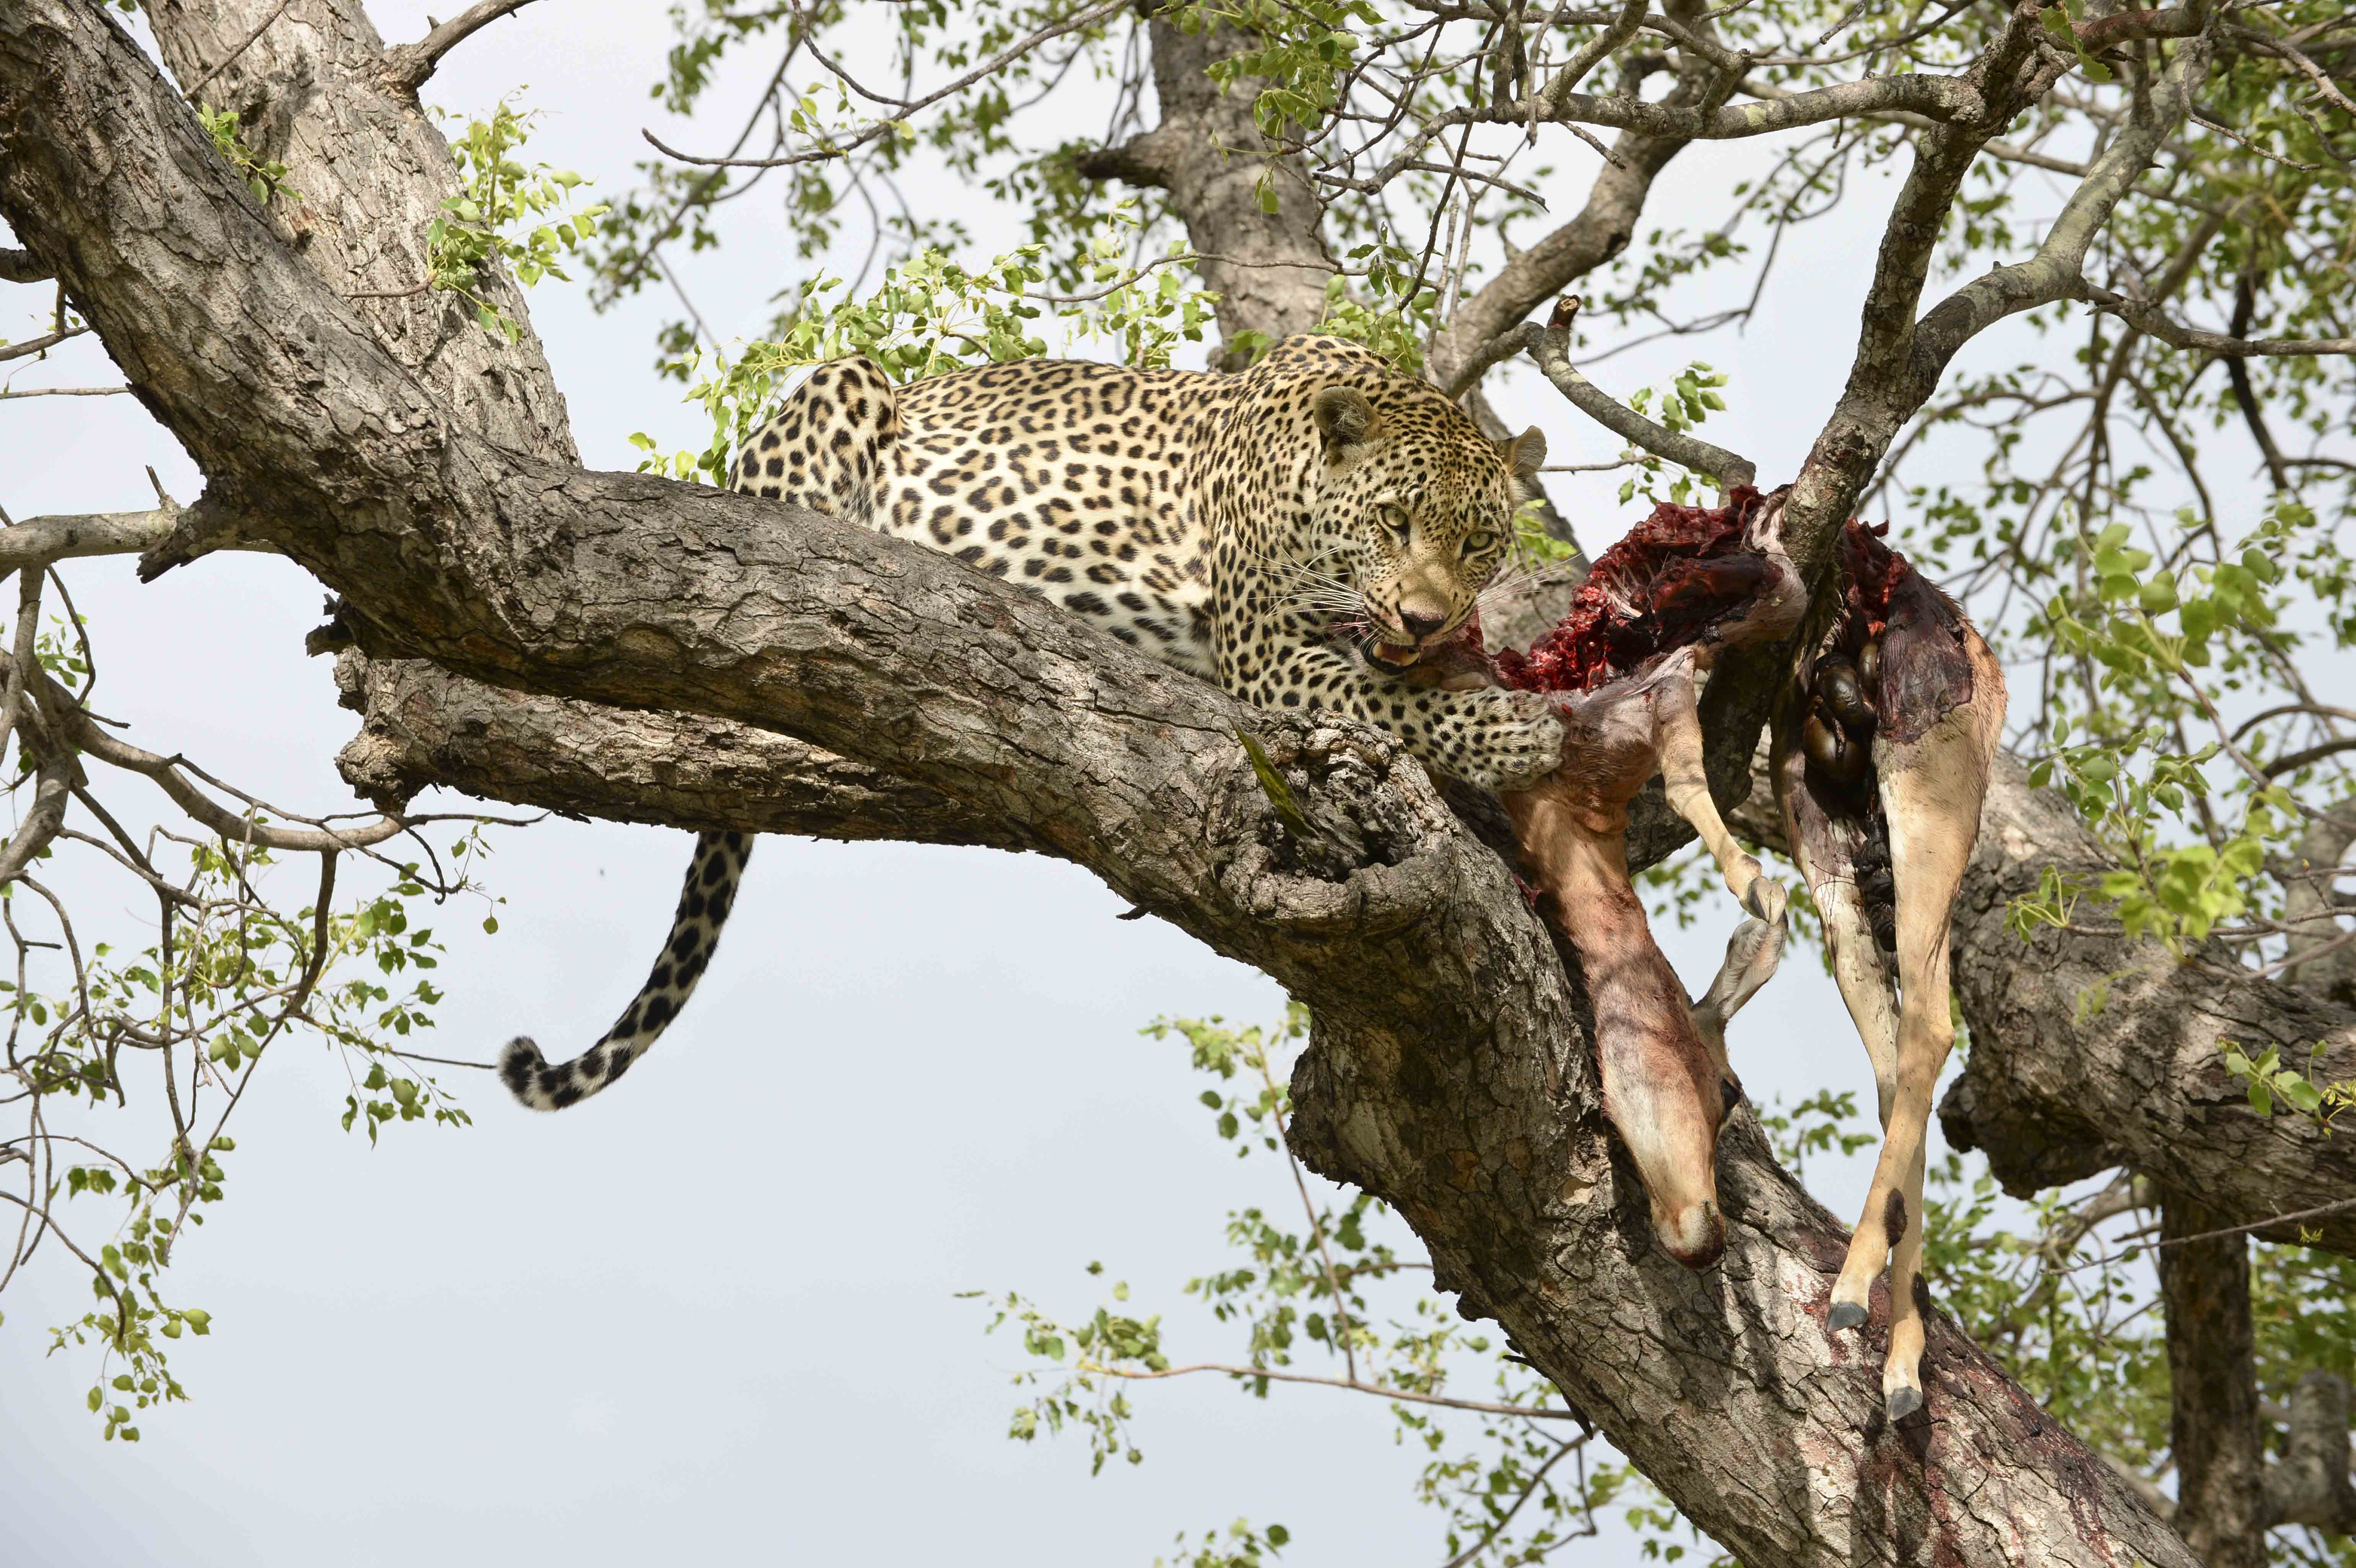 Leopard (Panthera pardus) with an Impala, ZA ©Johannes Ratermann